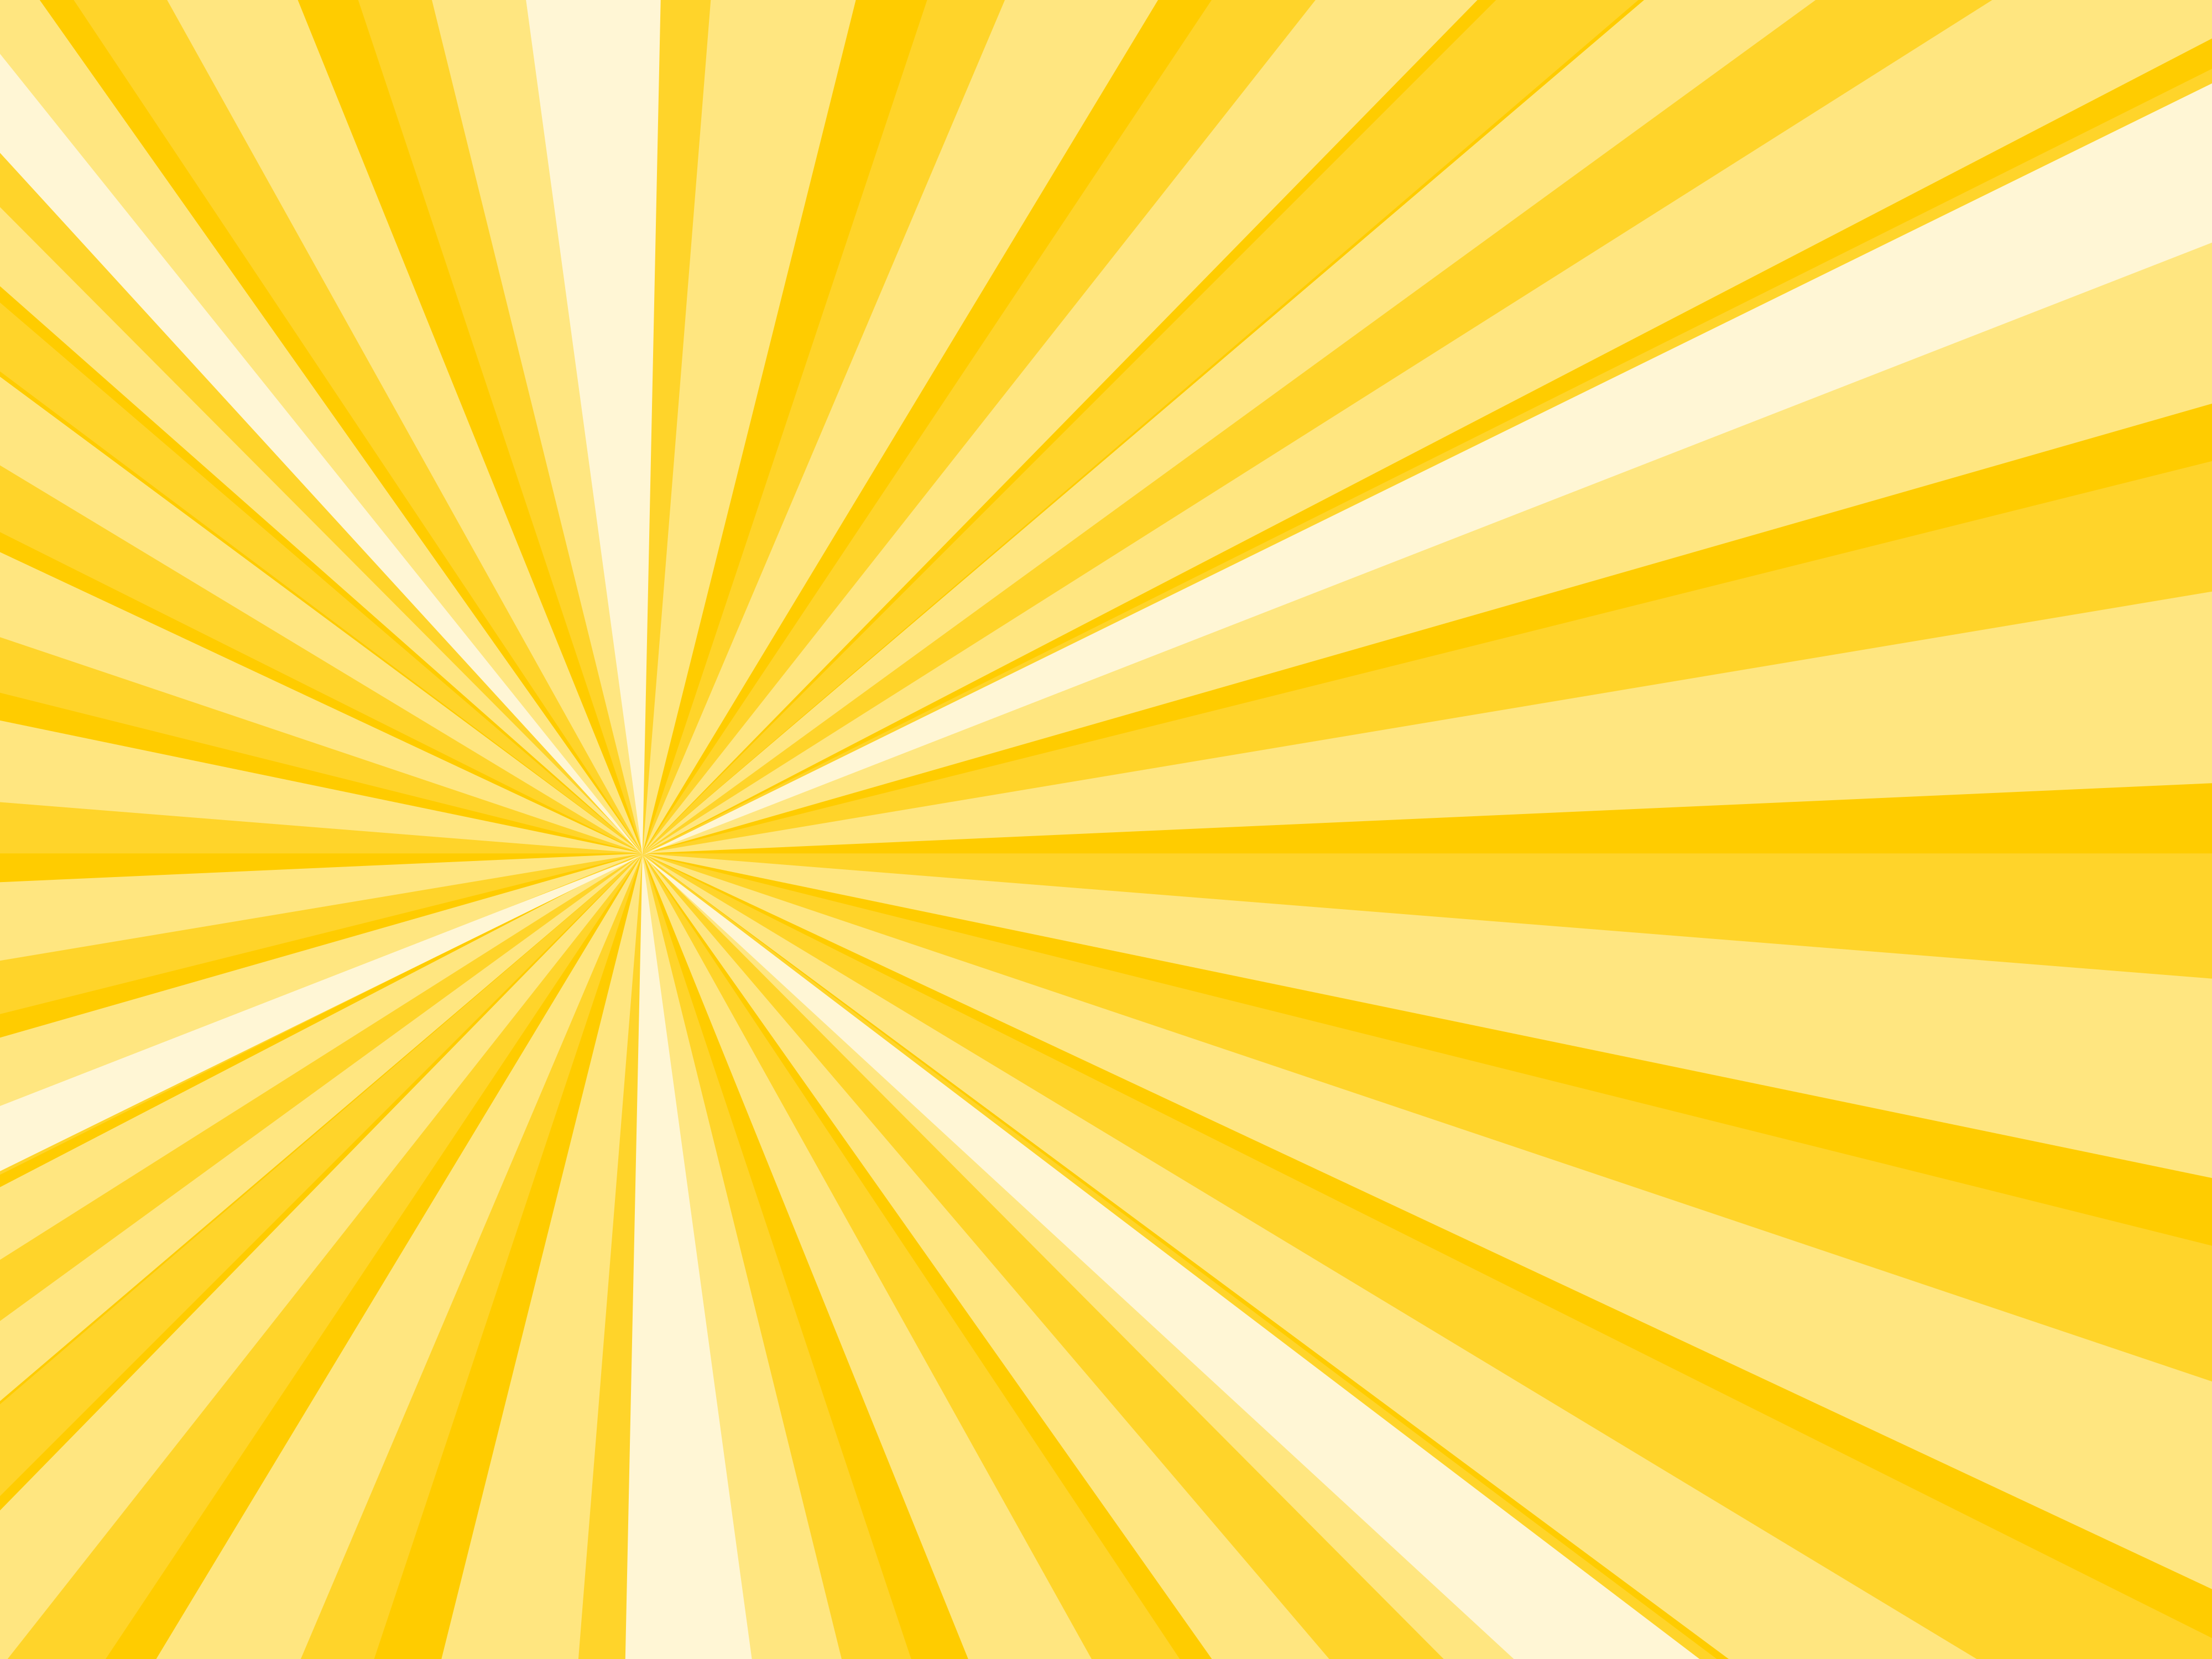 5 comic burst background  png transparent